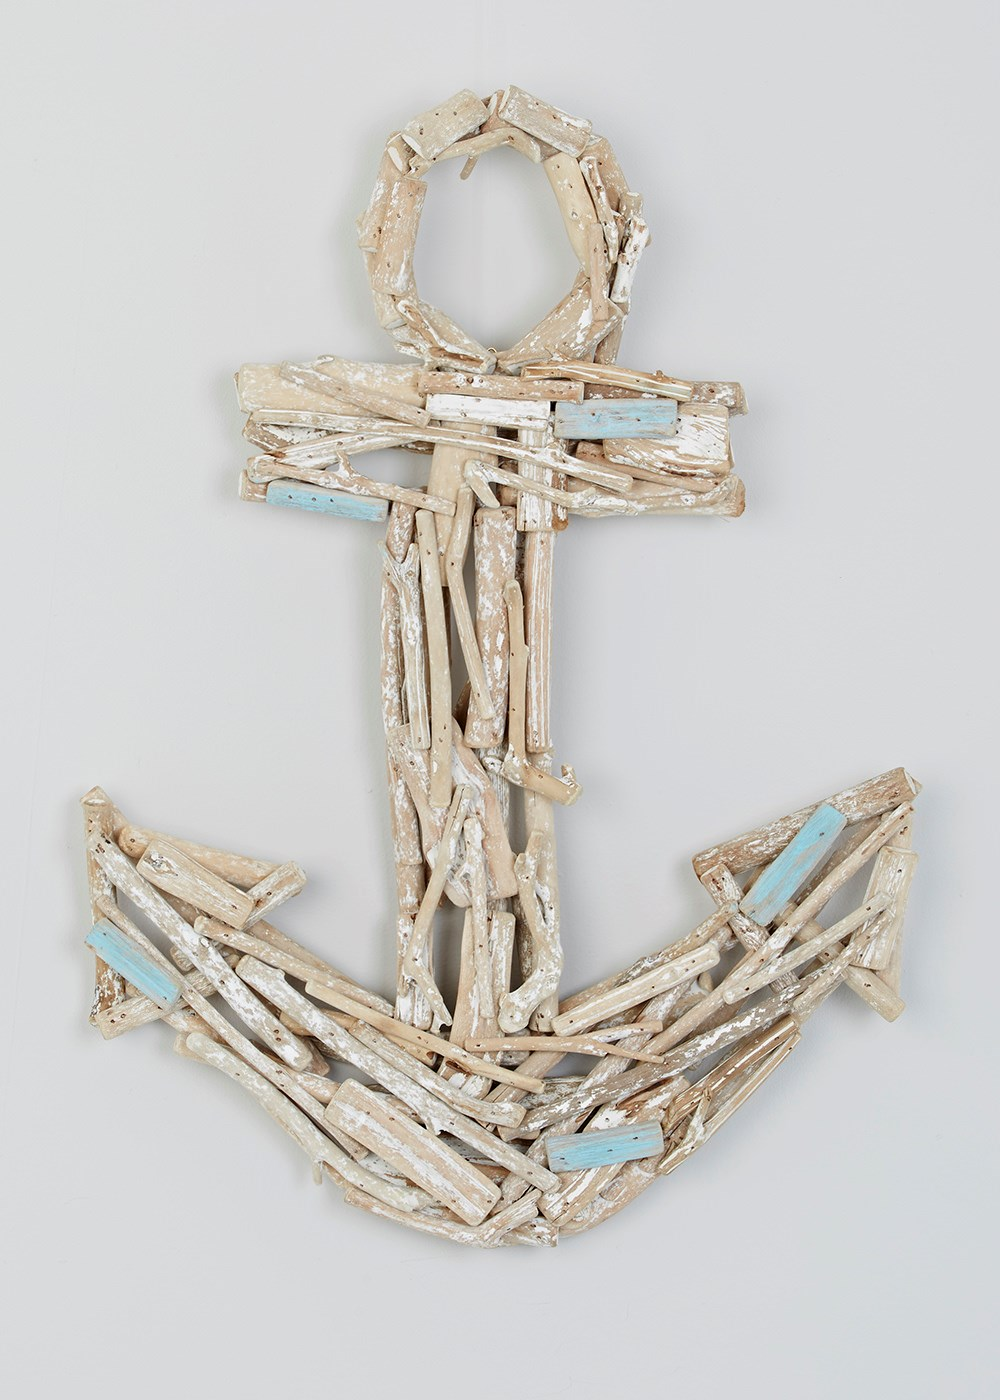 Gorgeous driftwood style wooden anchor - perfect for a coastal inspired interior design scheme